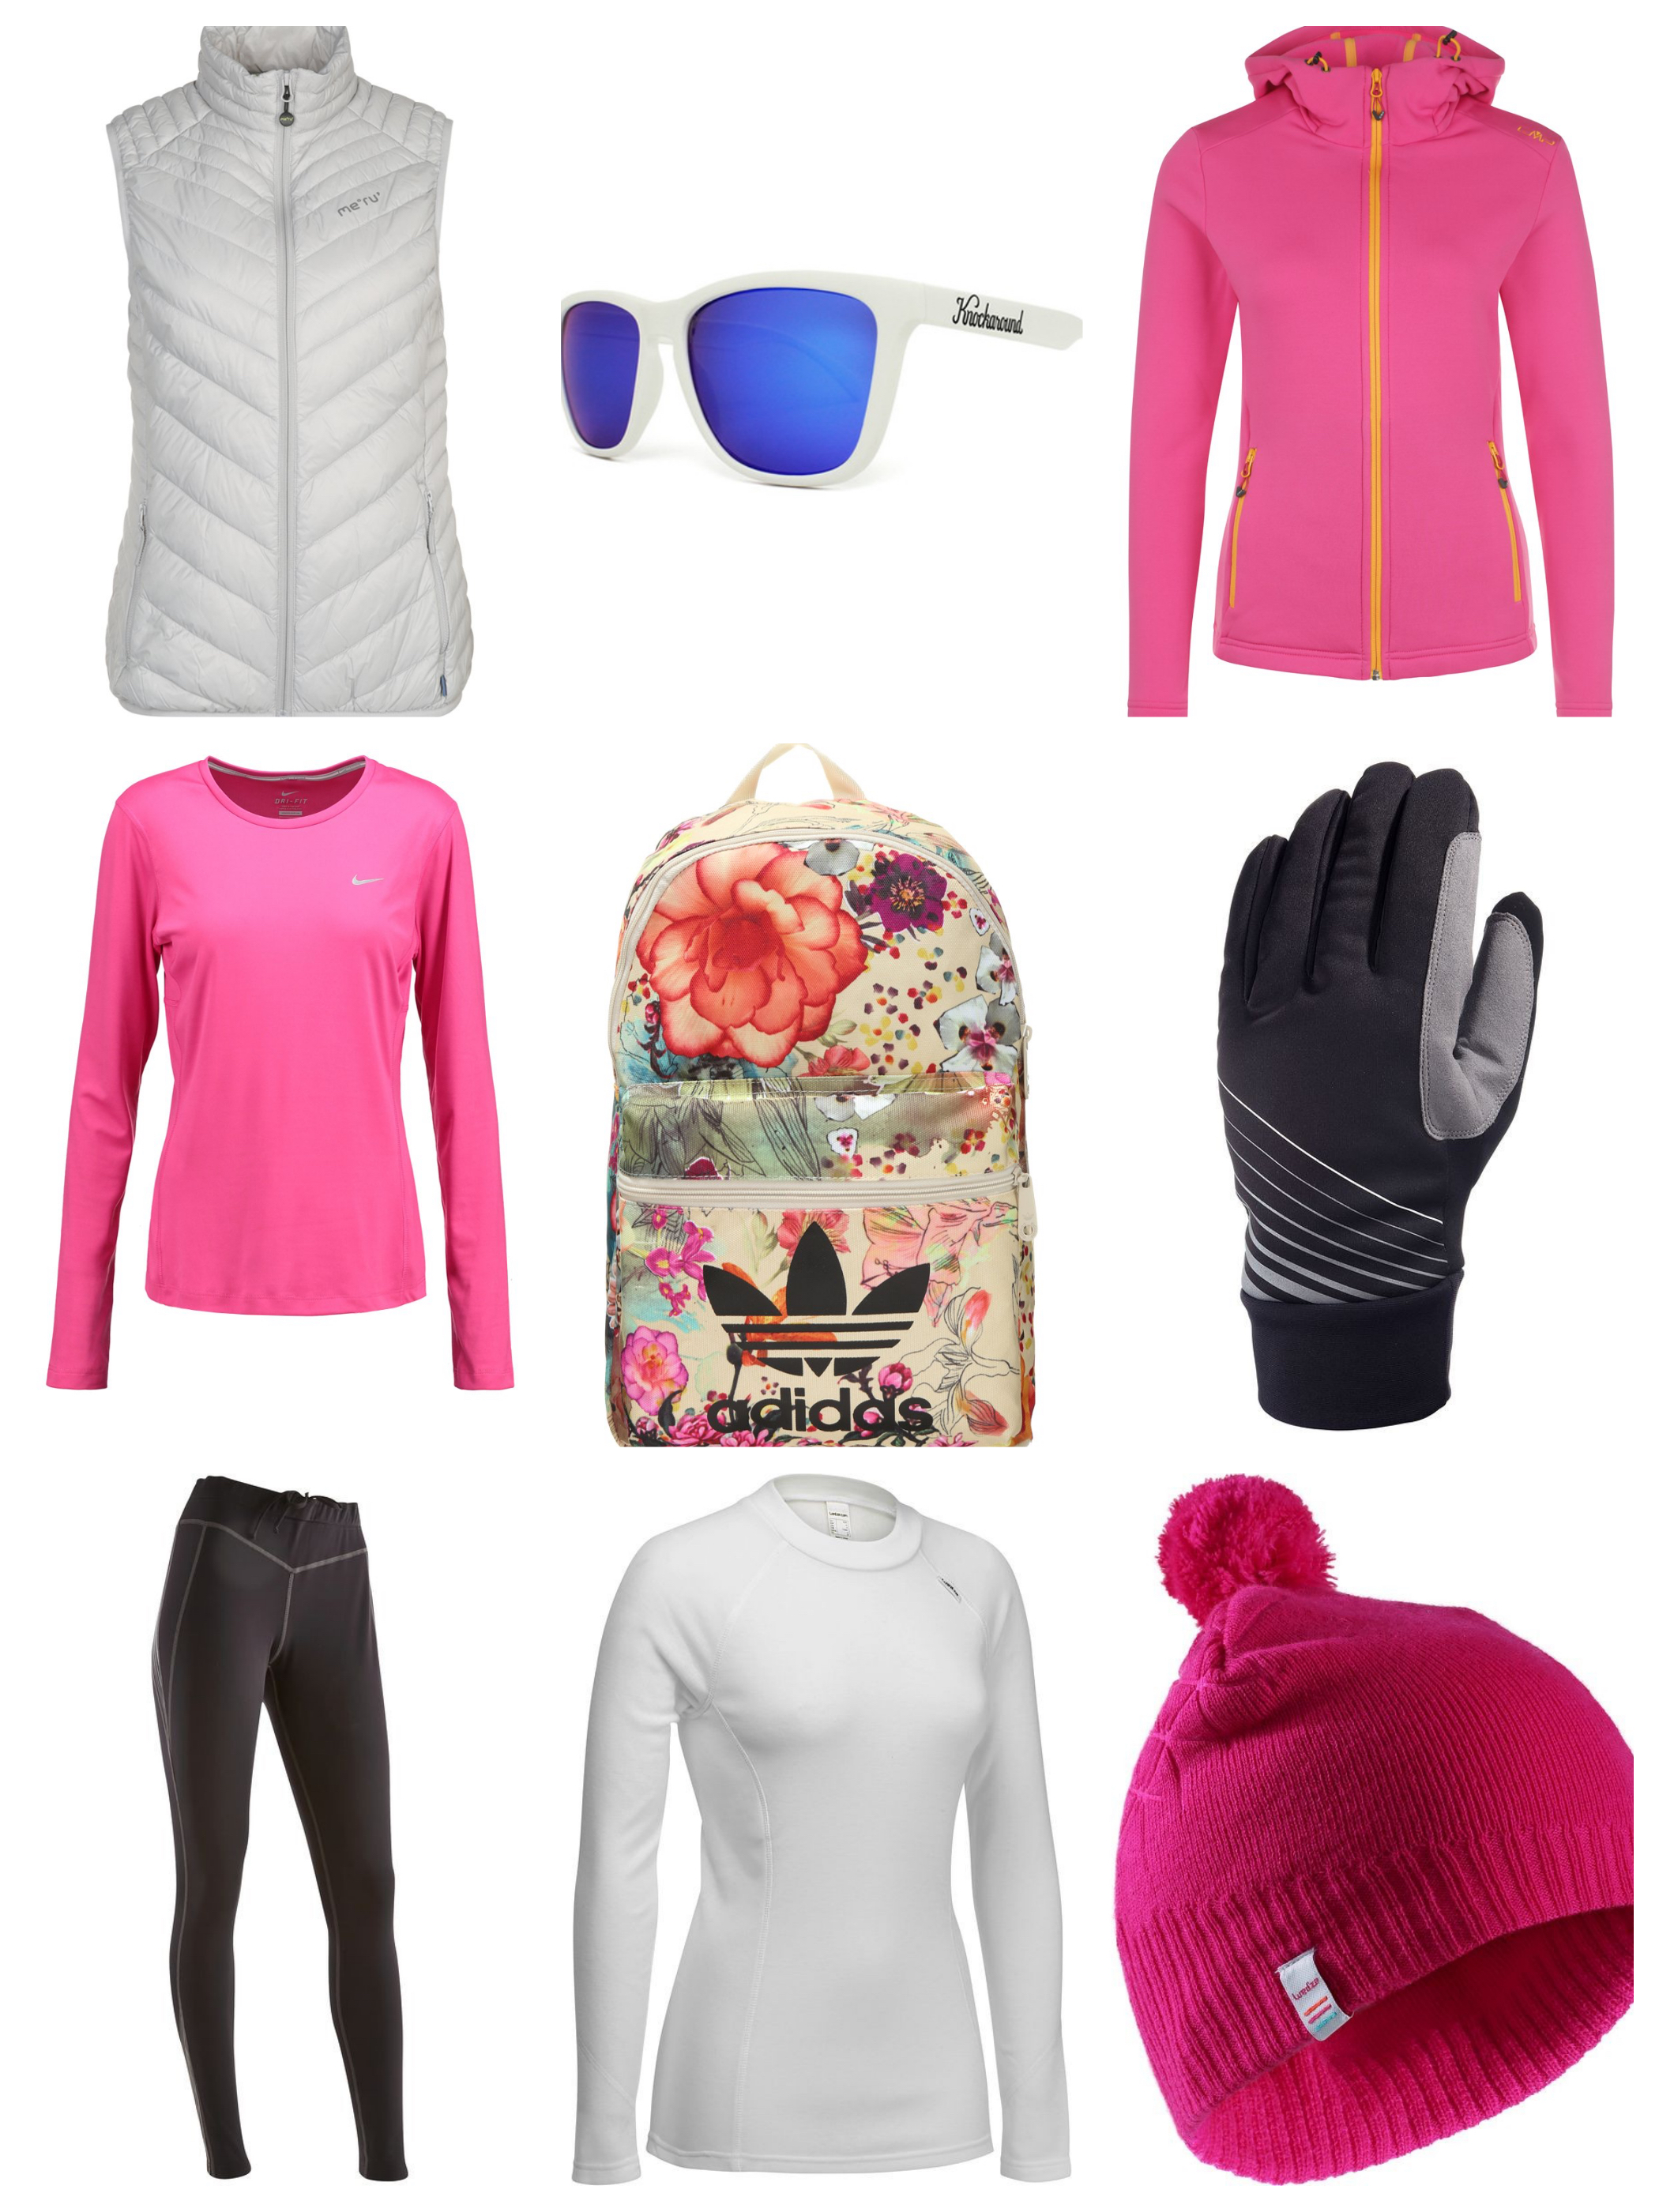 adidas_139_Fotor_Collage